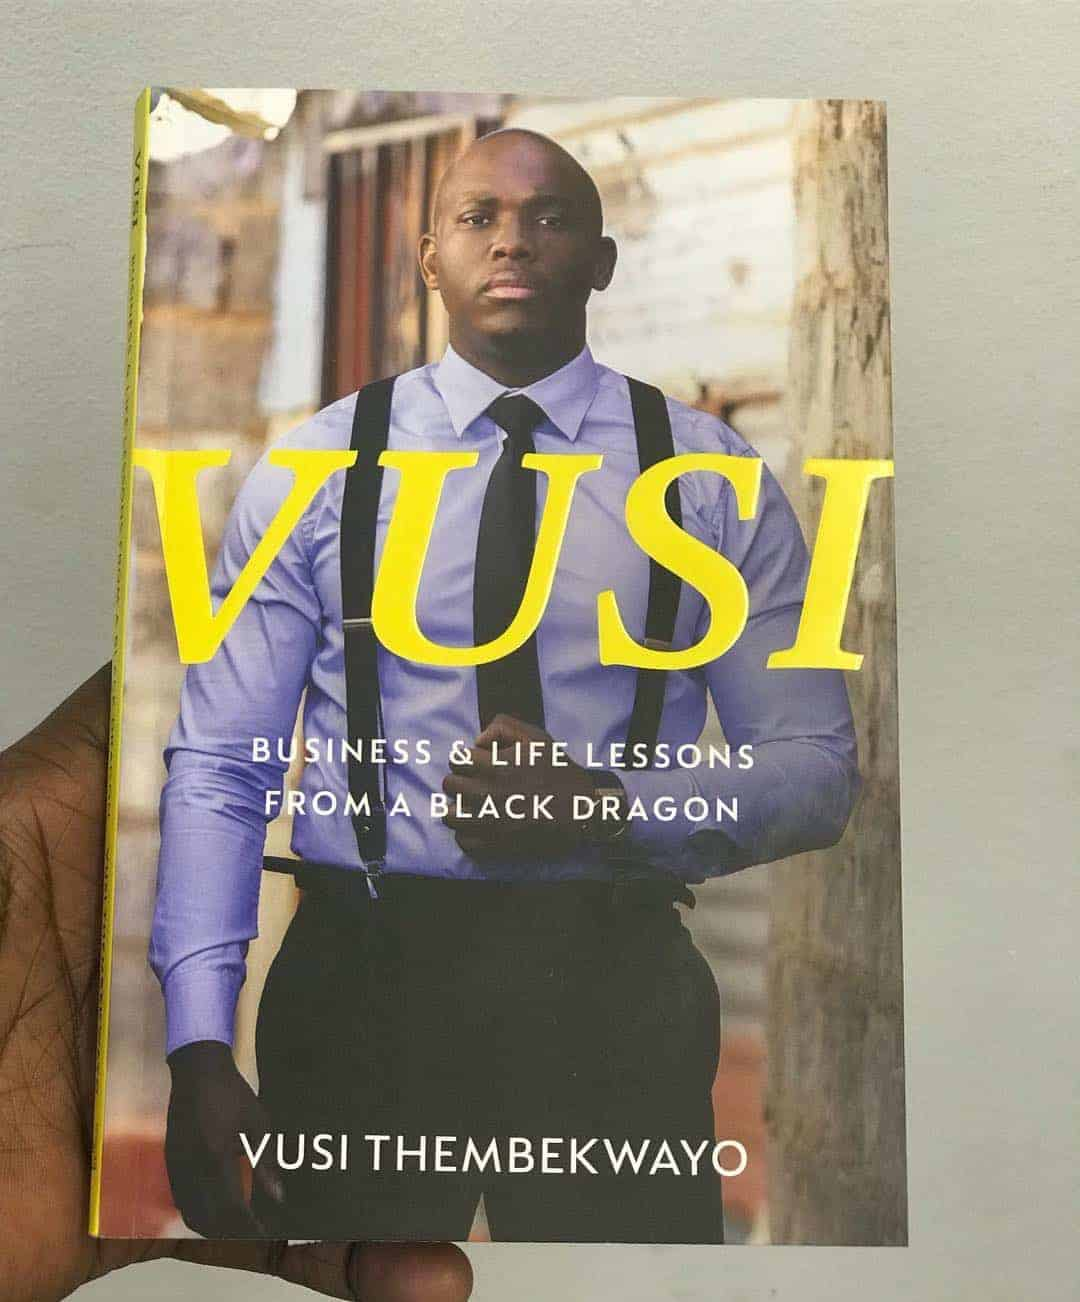 Vusi-Business-and-Life-Lessons-from-a-Black-Dragon